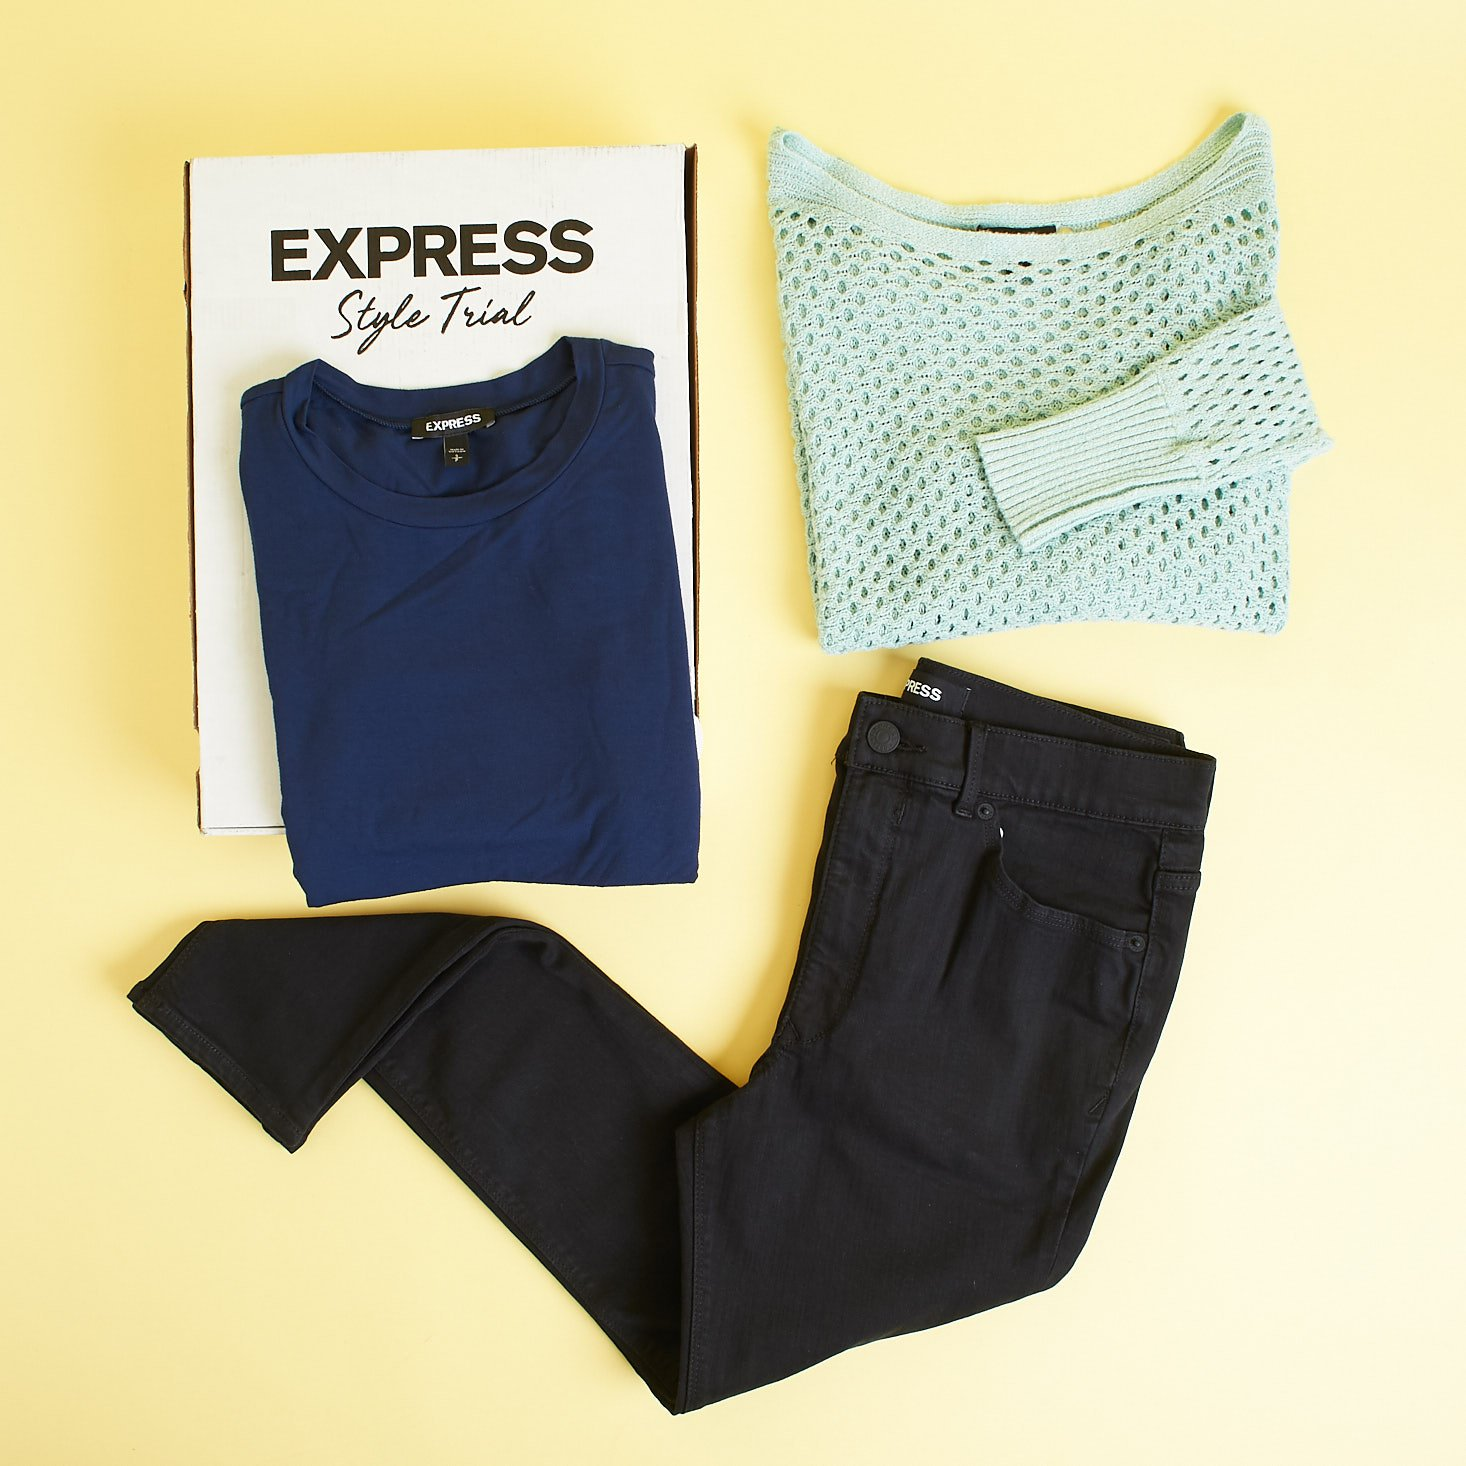 3 Express clothing items around box - delivery #3